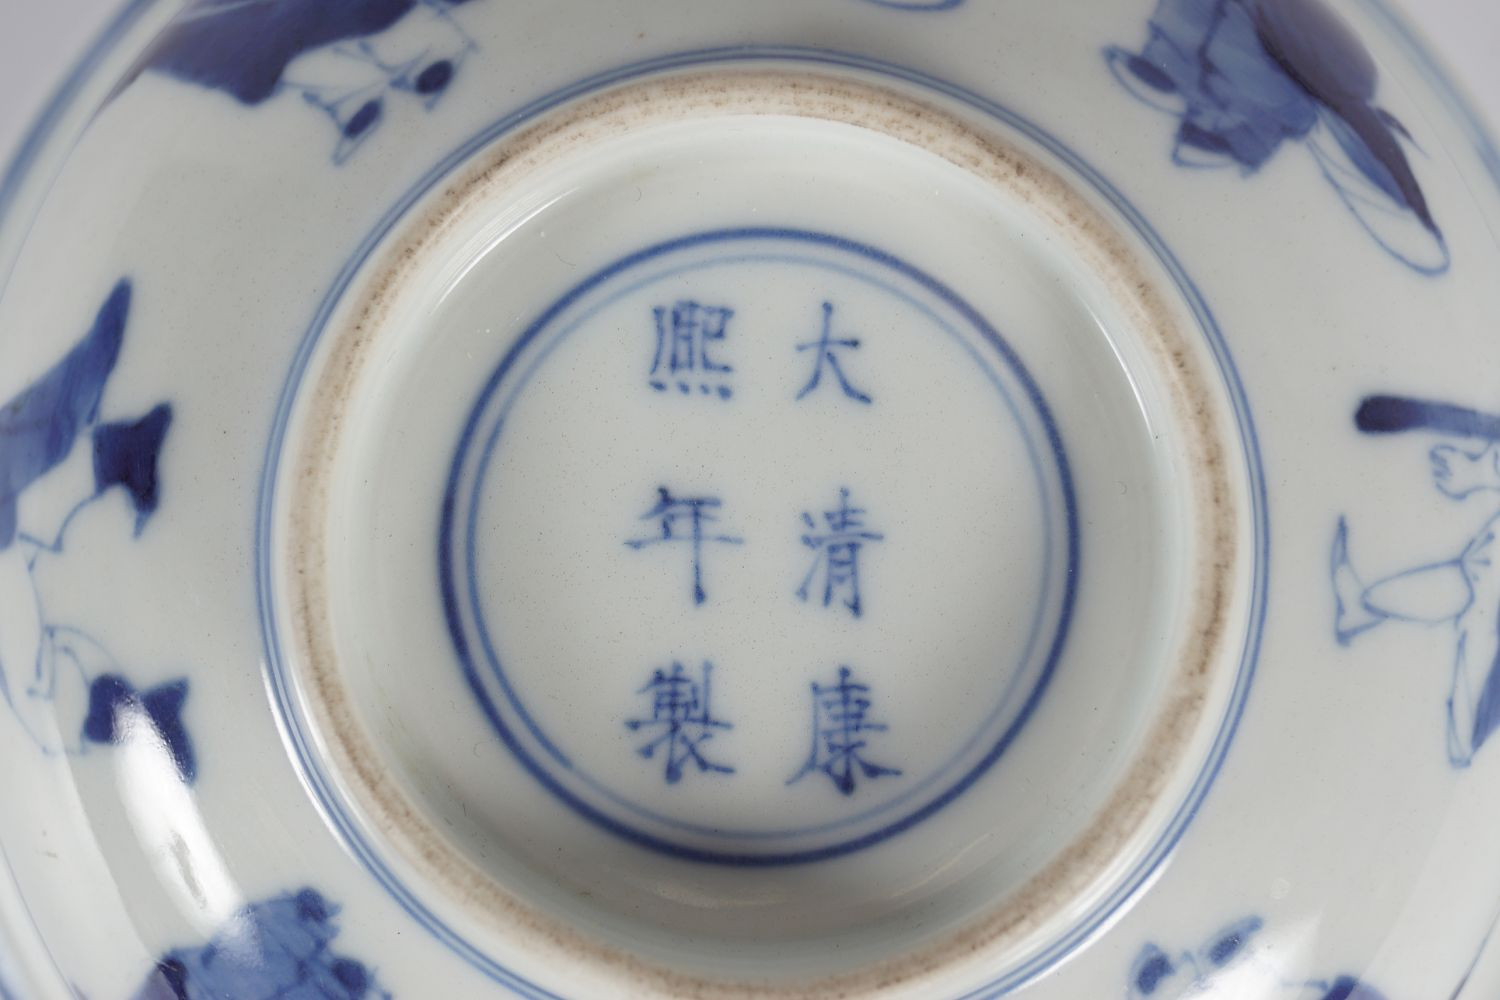 CHINESE BLUE AND WHITE EIGHT IMMORTALS BOWL - Image 4 of 4